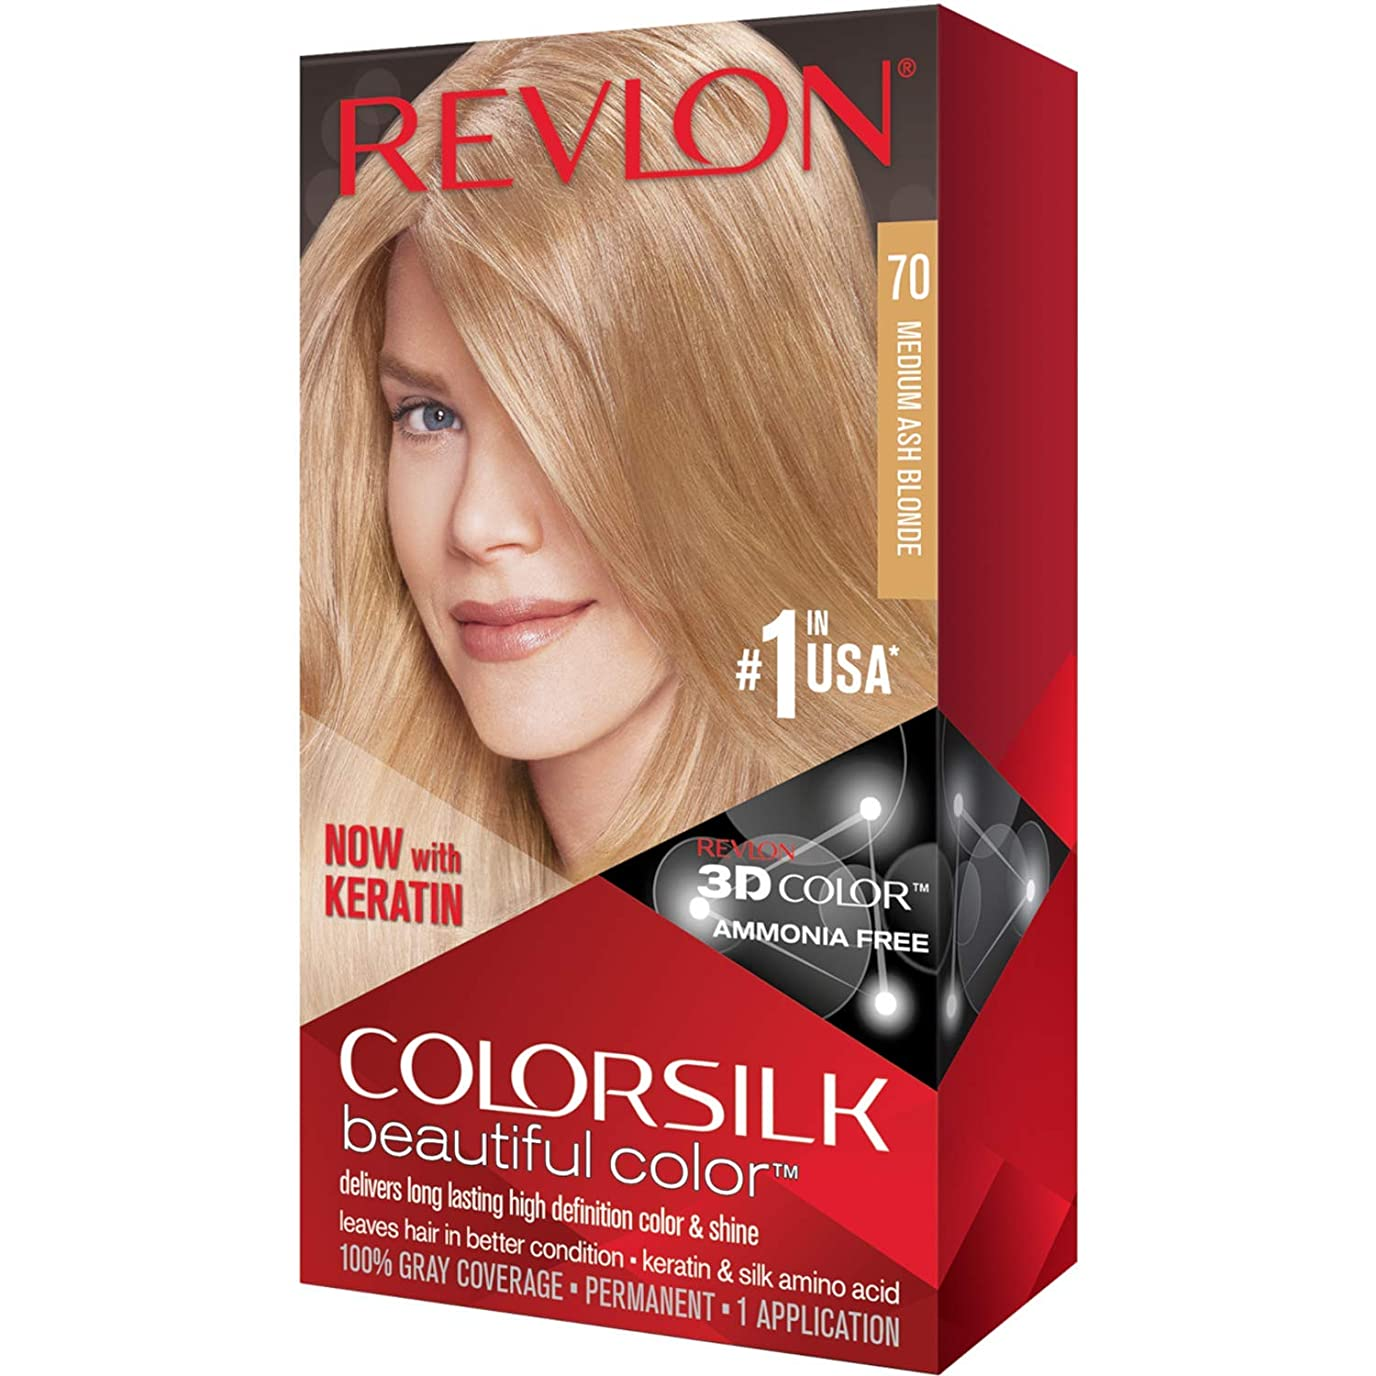 パワーセル趣味ビヨン海外直送品Revlon Colorsilk Natural Hair Color, 7A Medium Ash Blonde each by Revlon